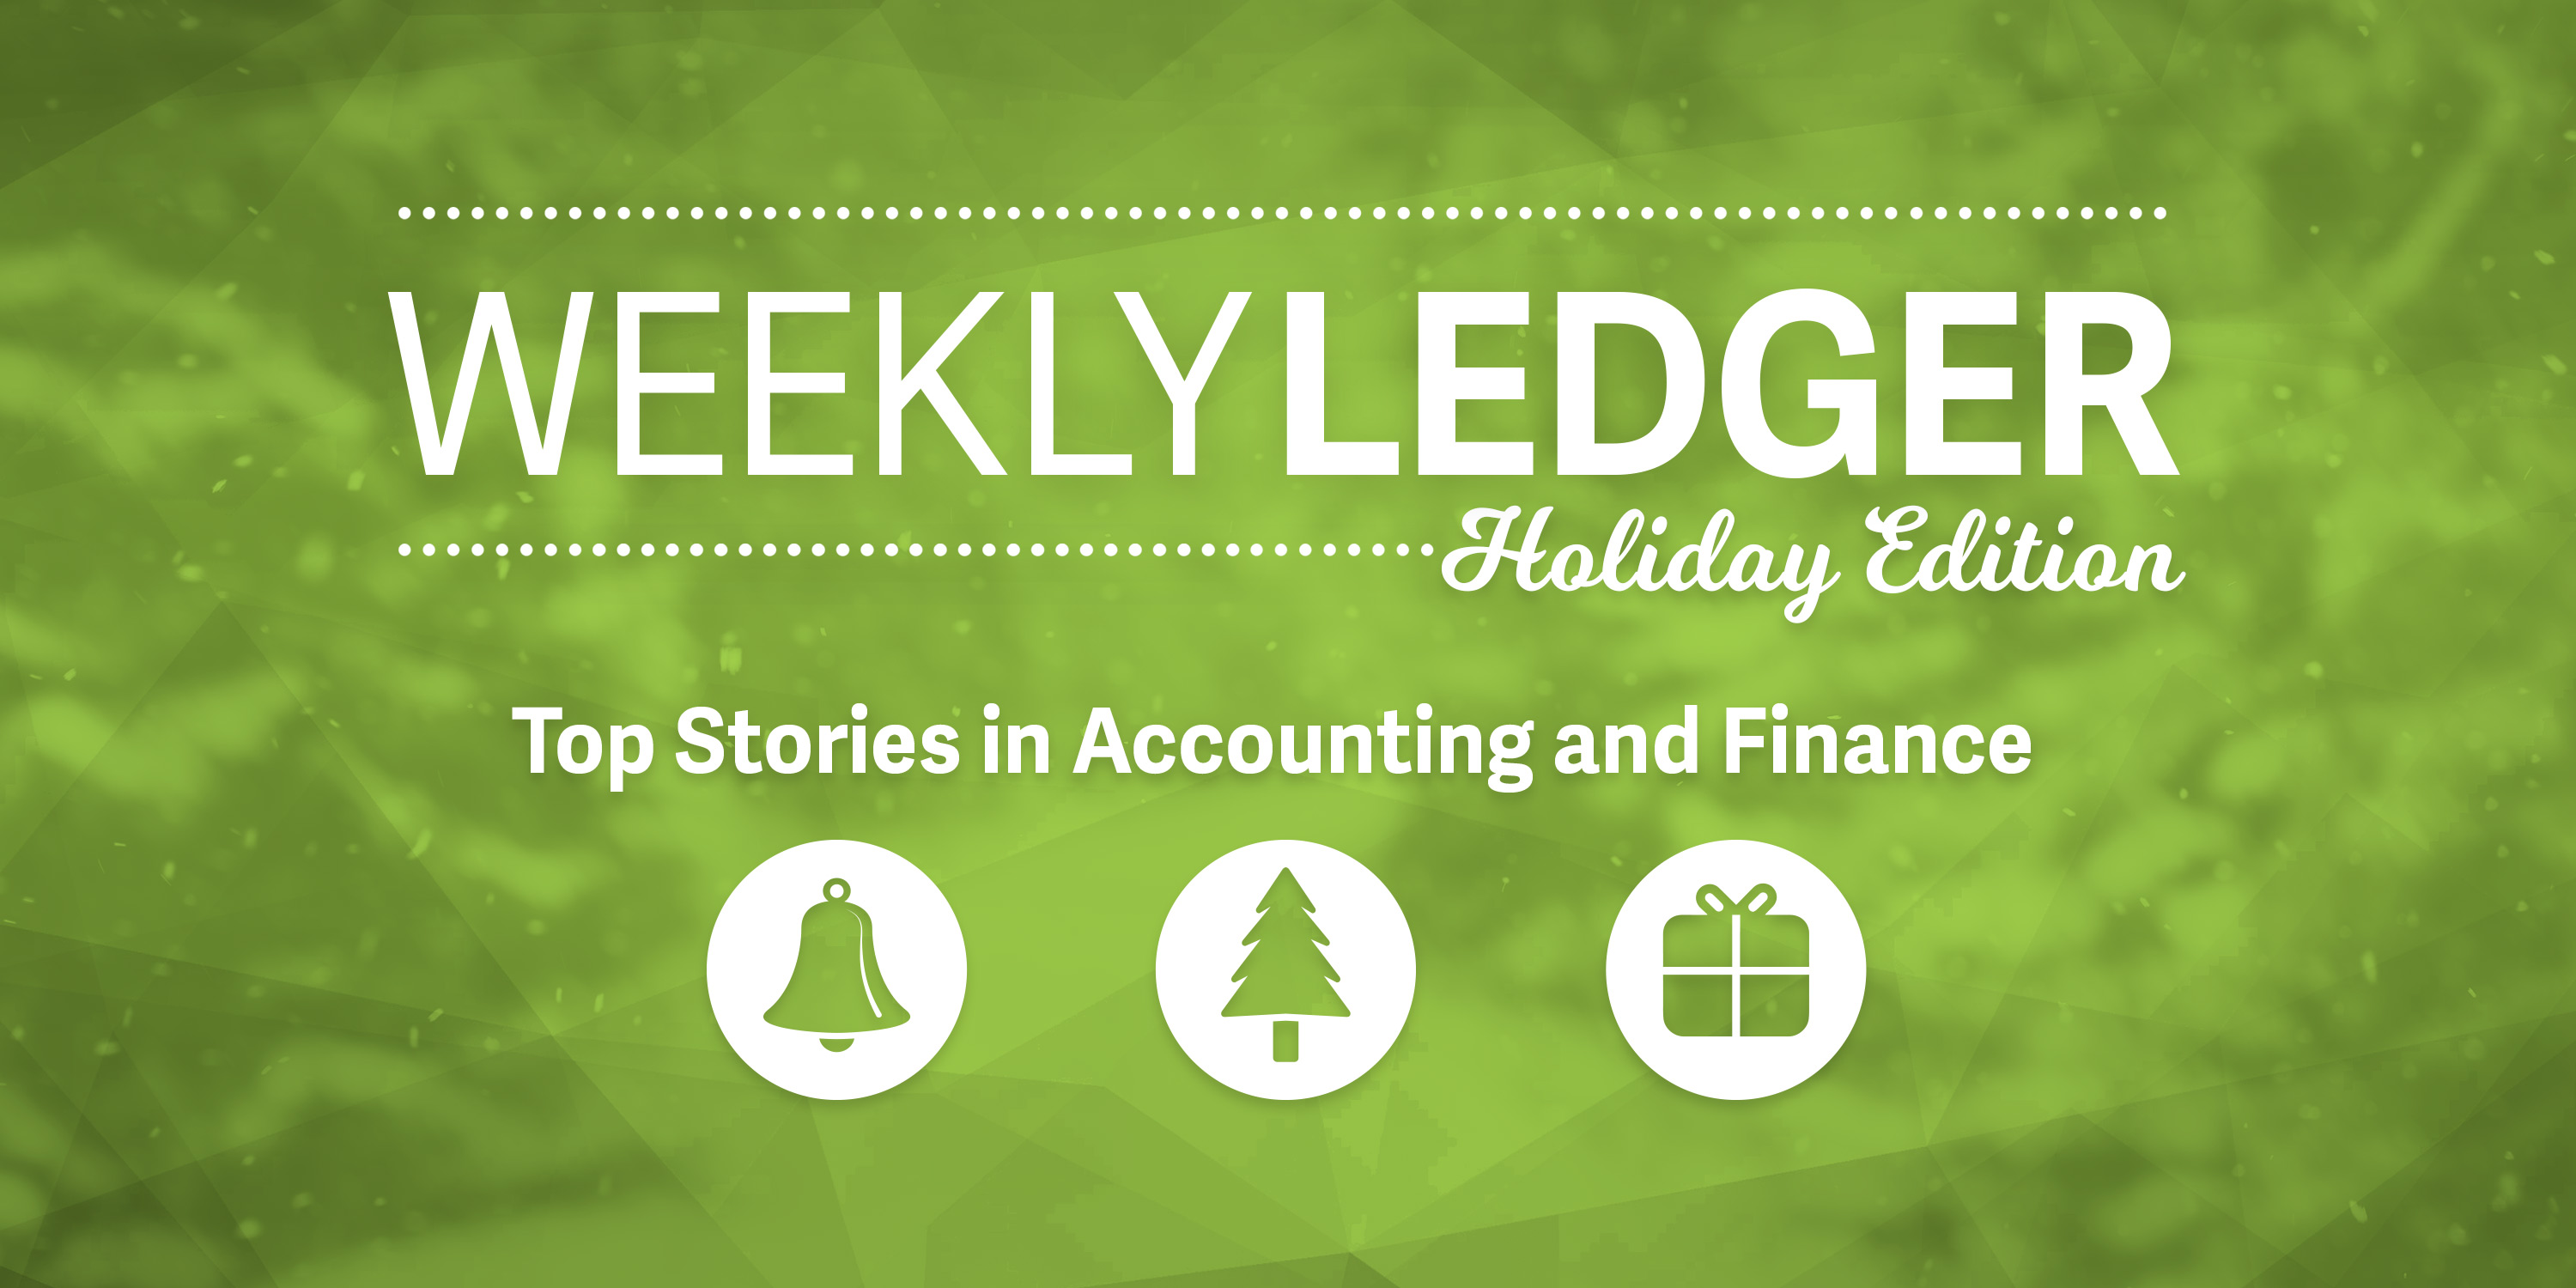 The ledger holiday 2017 edition